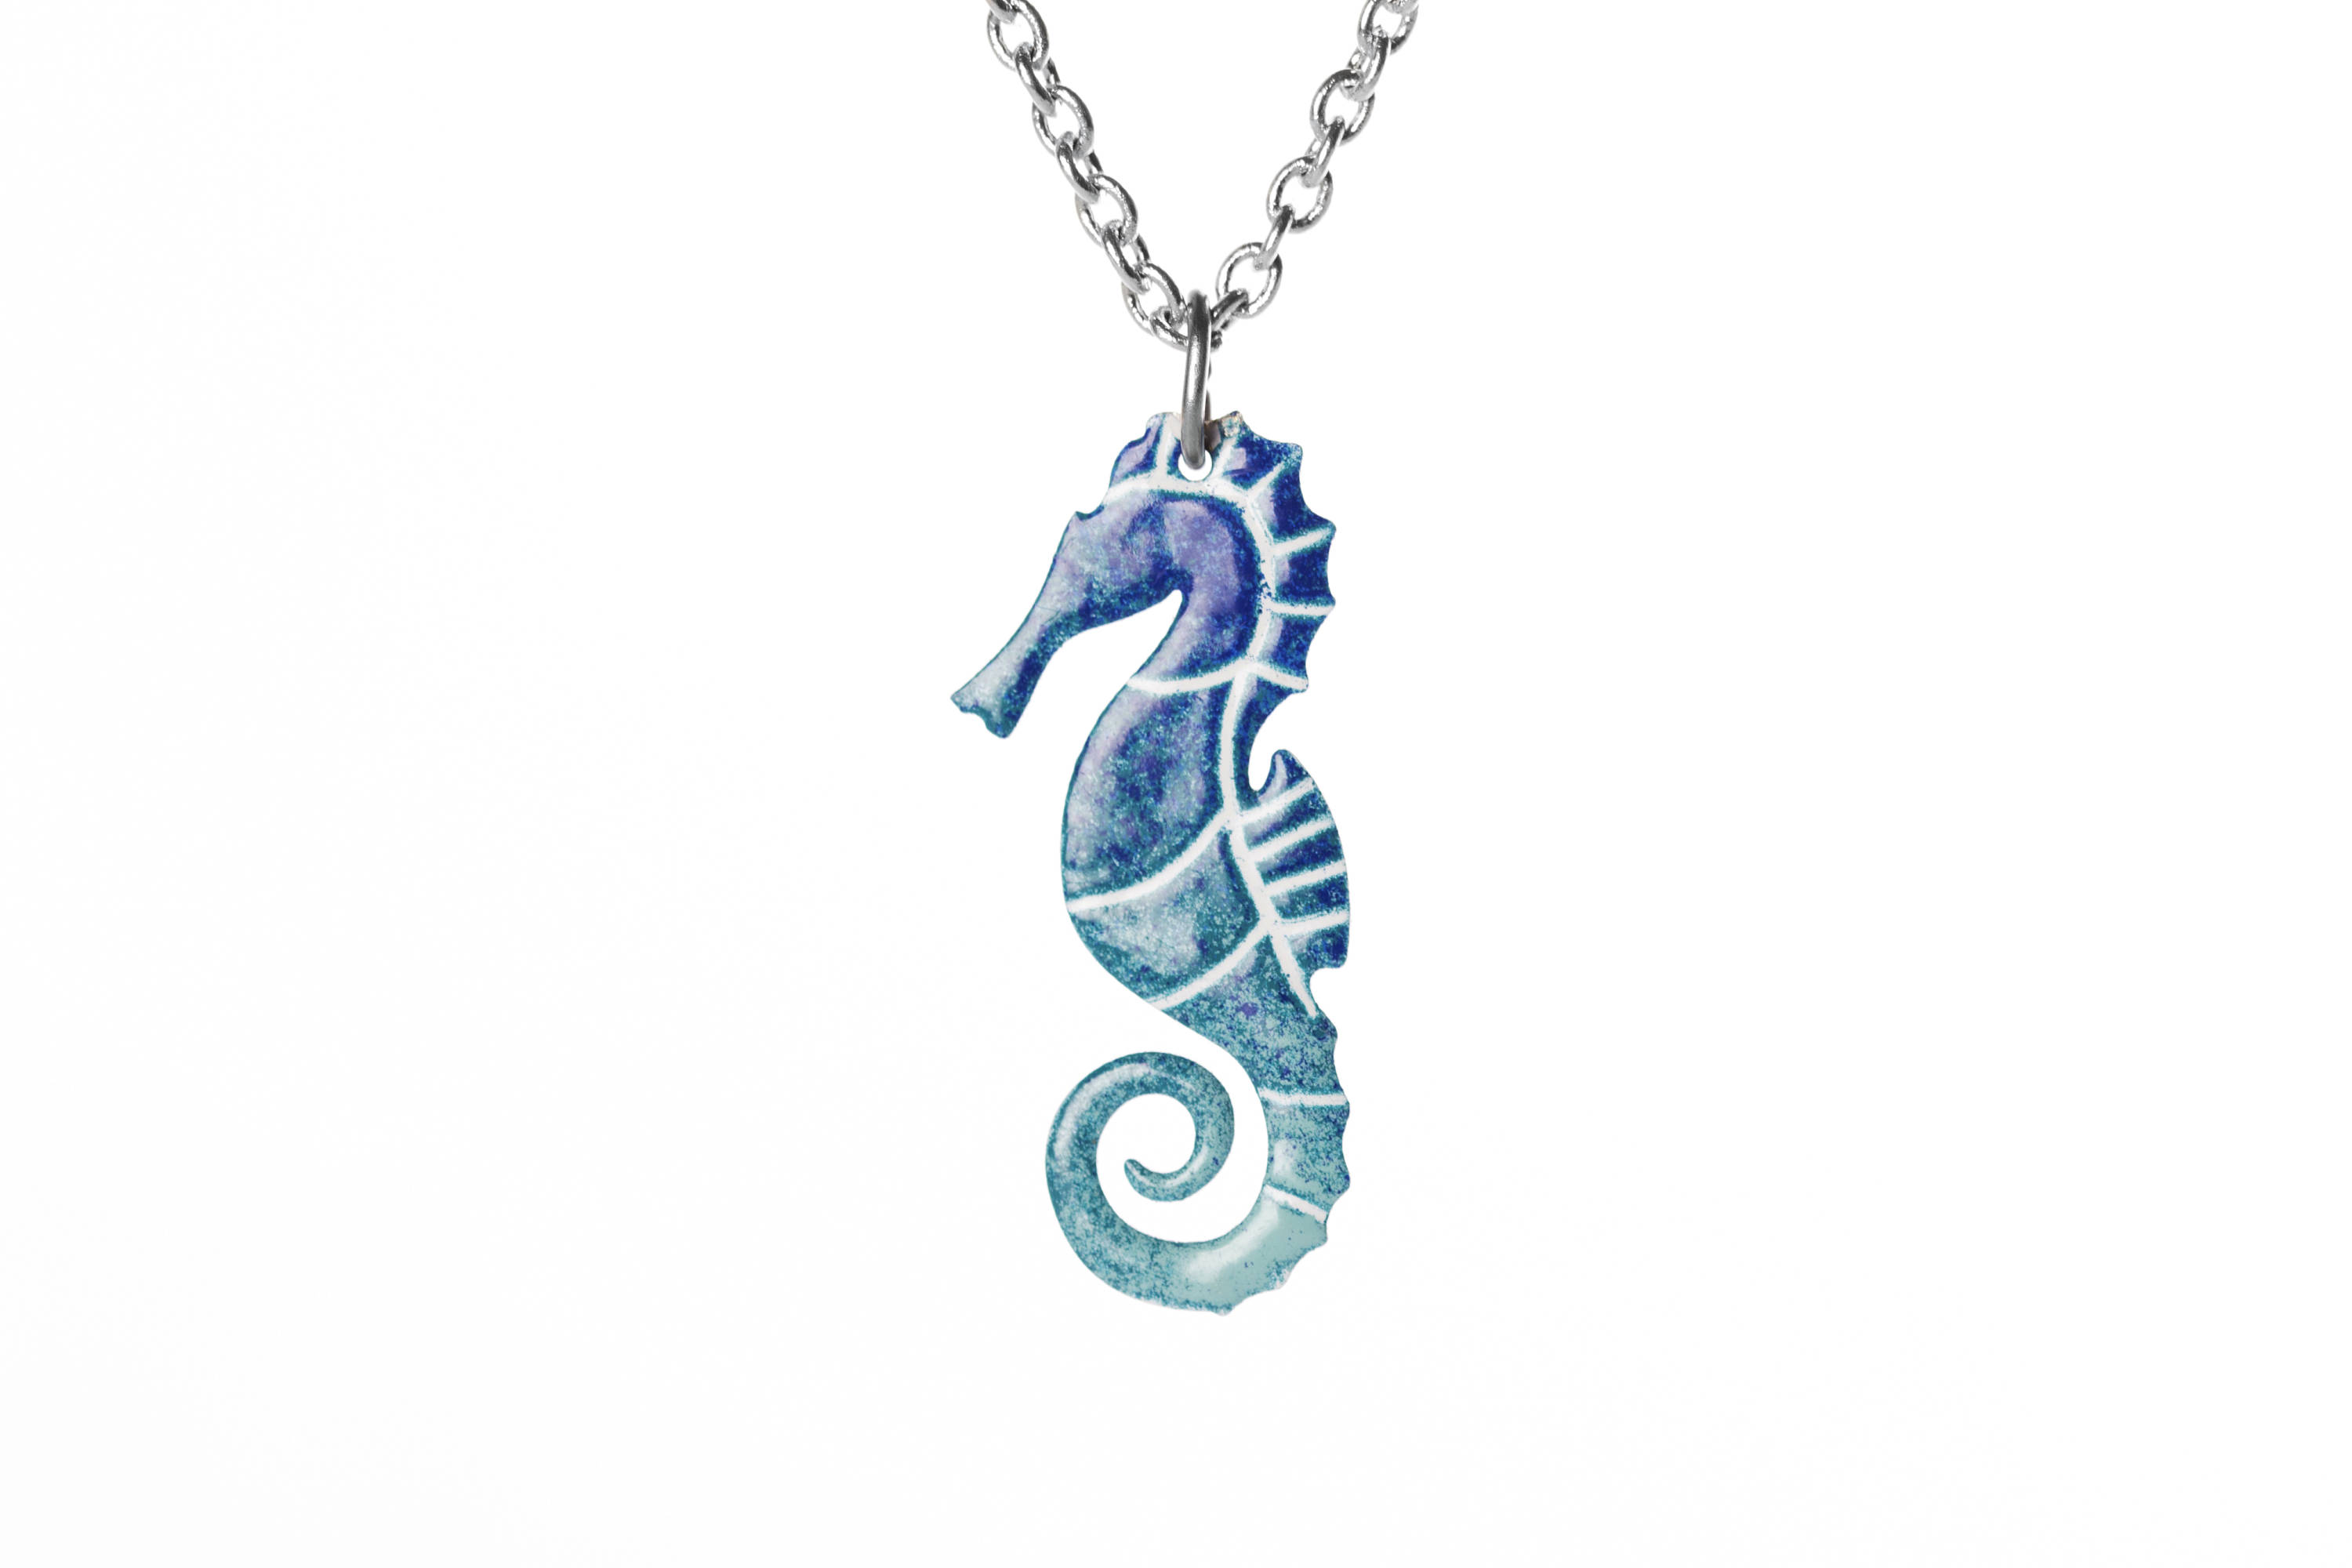 Seahorse Pendant Stainless Steel Enamel Pendant Handpainted Pendant Beach Necklace Seahorse Jewelry Nautical Jewelry For Women Cinkylinky Online Store Powered By Storenvy